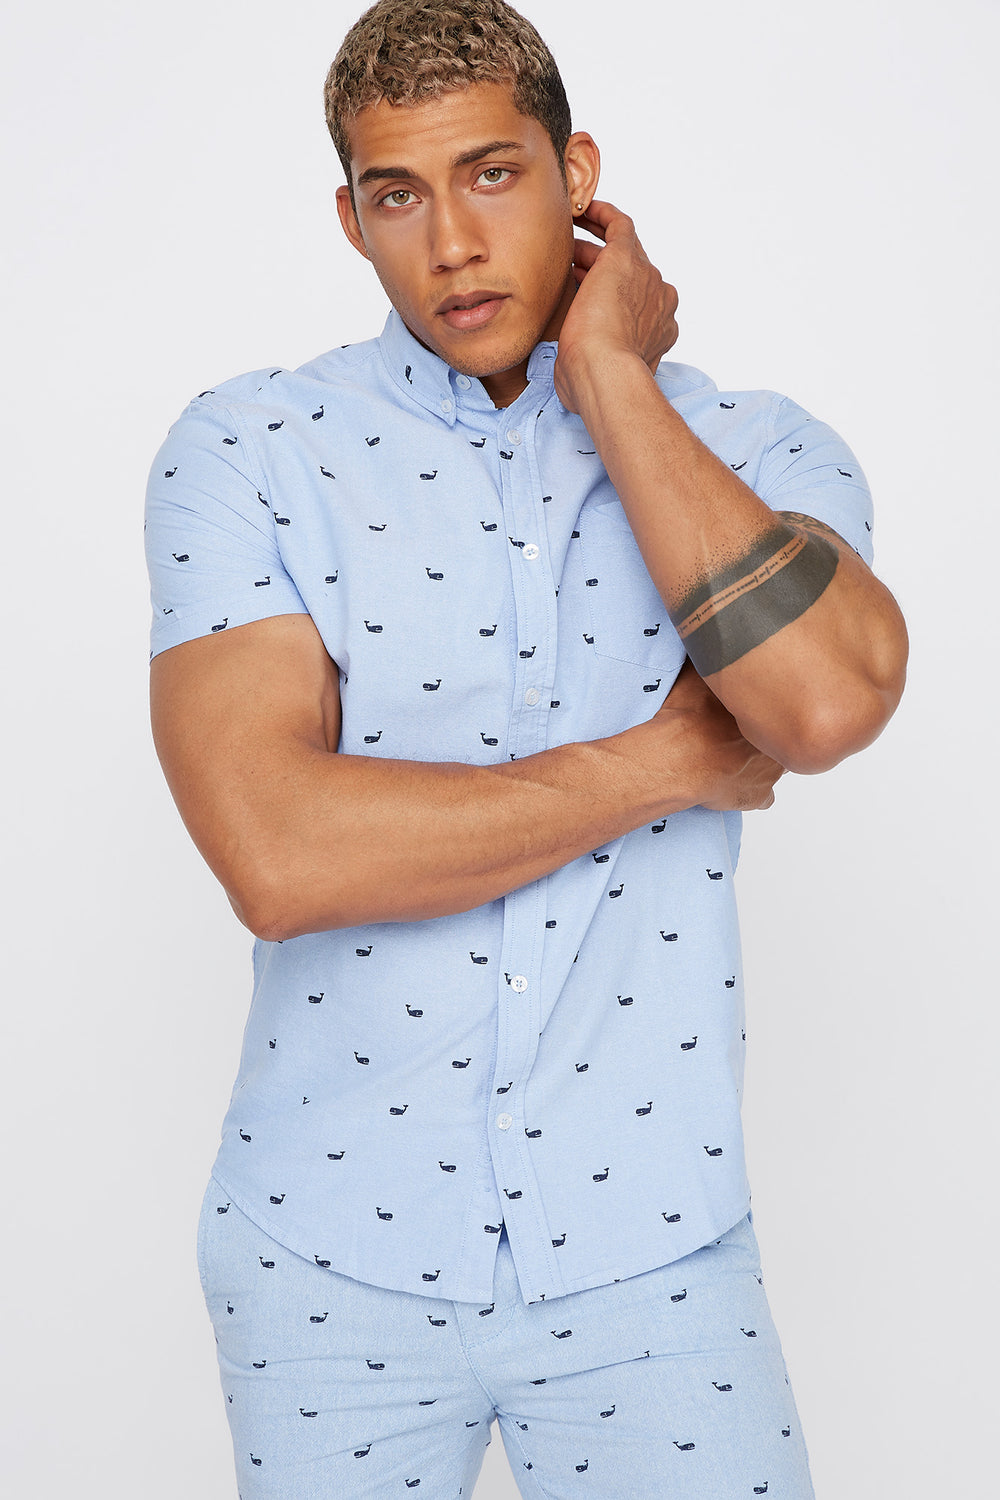 Printed Button-Up Short Sleeve Shirt Light Blue